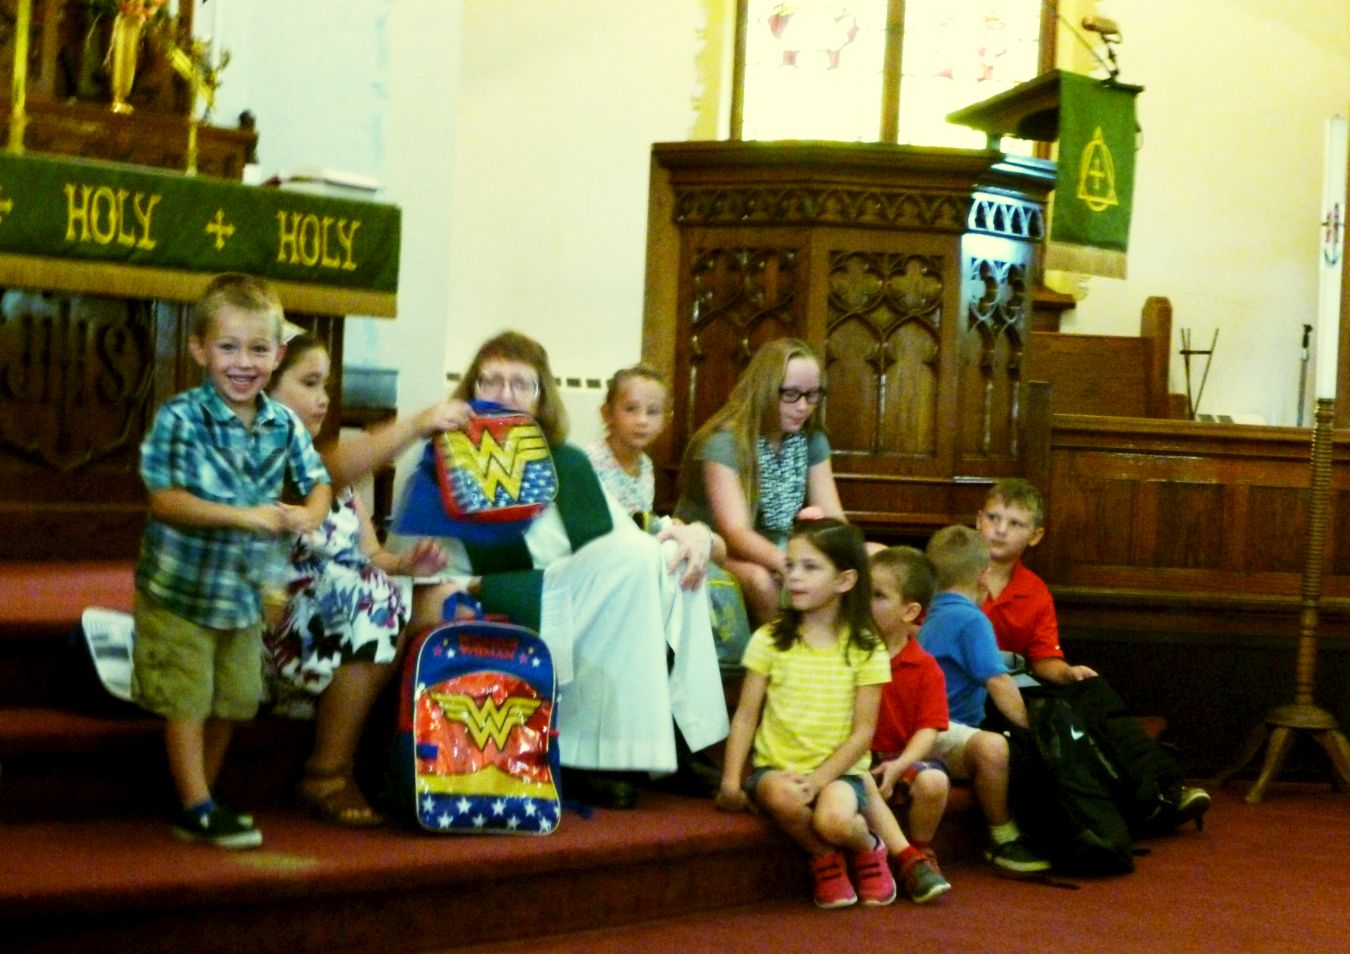 Pastor Karen blessing backpacks, 26 Aug 2018.